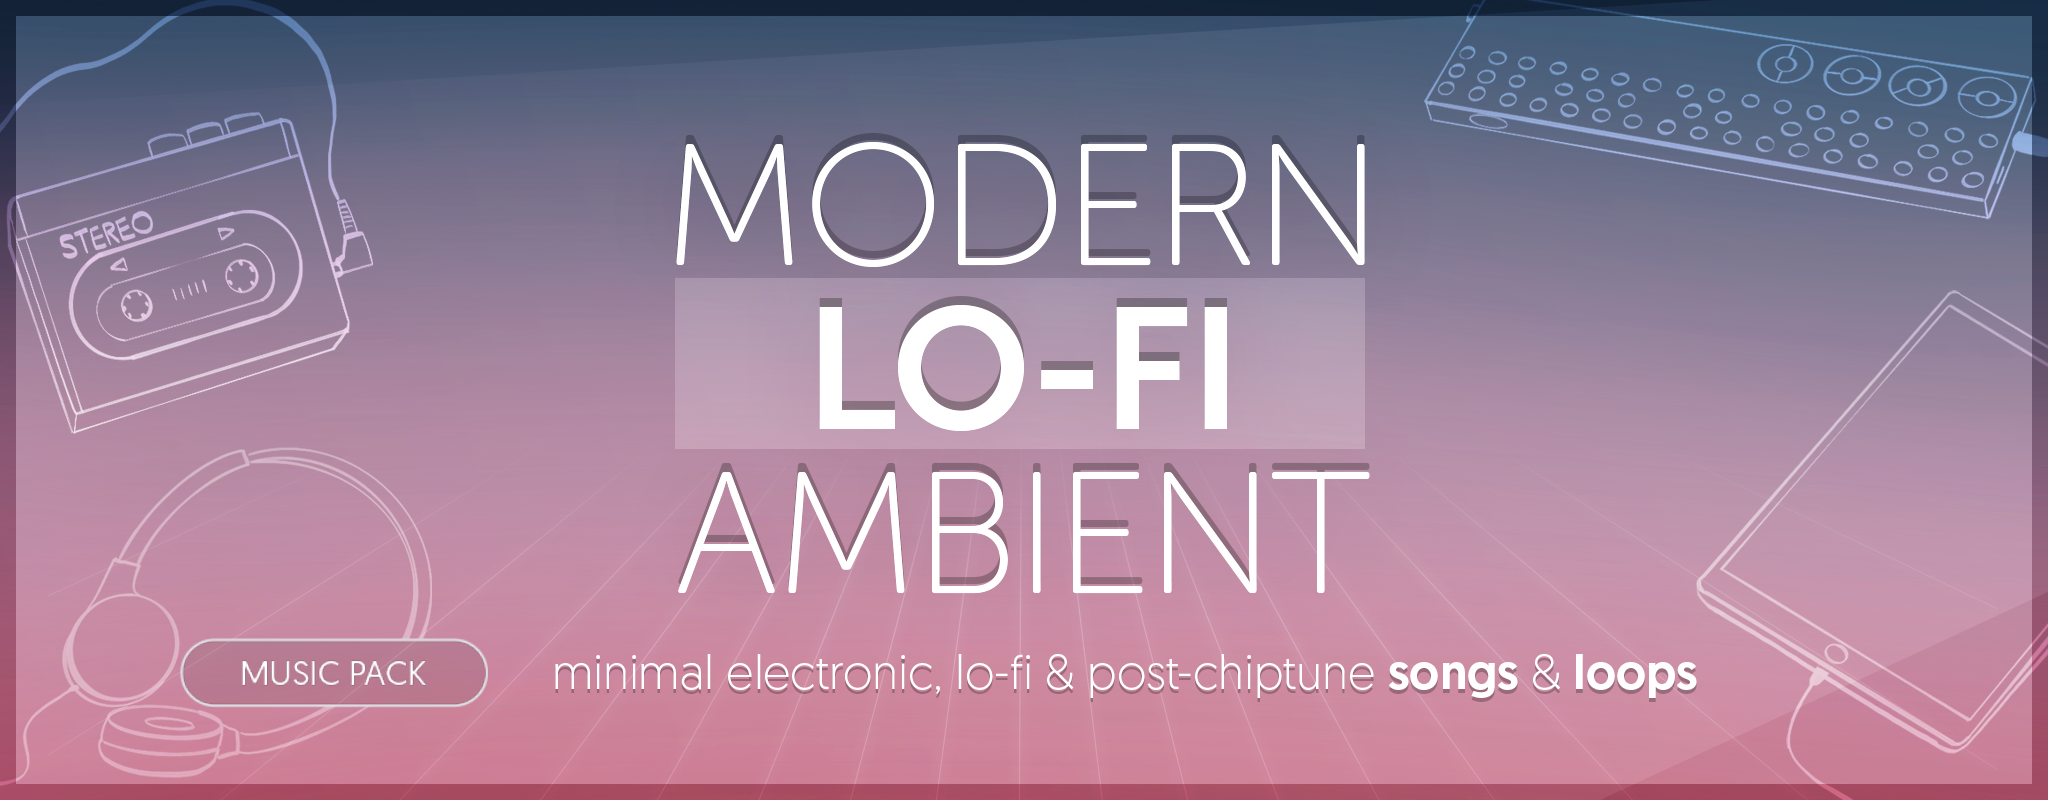 Modern Lo-Fi Ambient - music pack